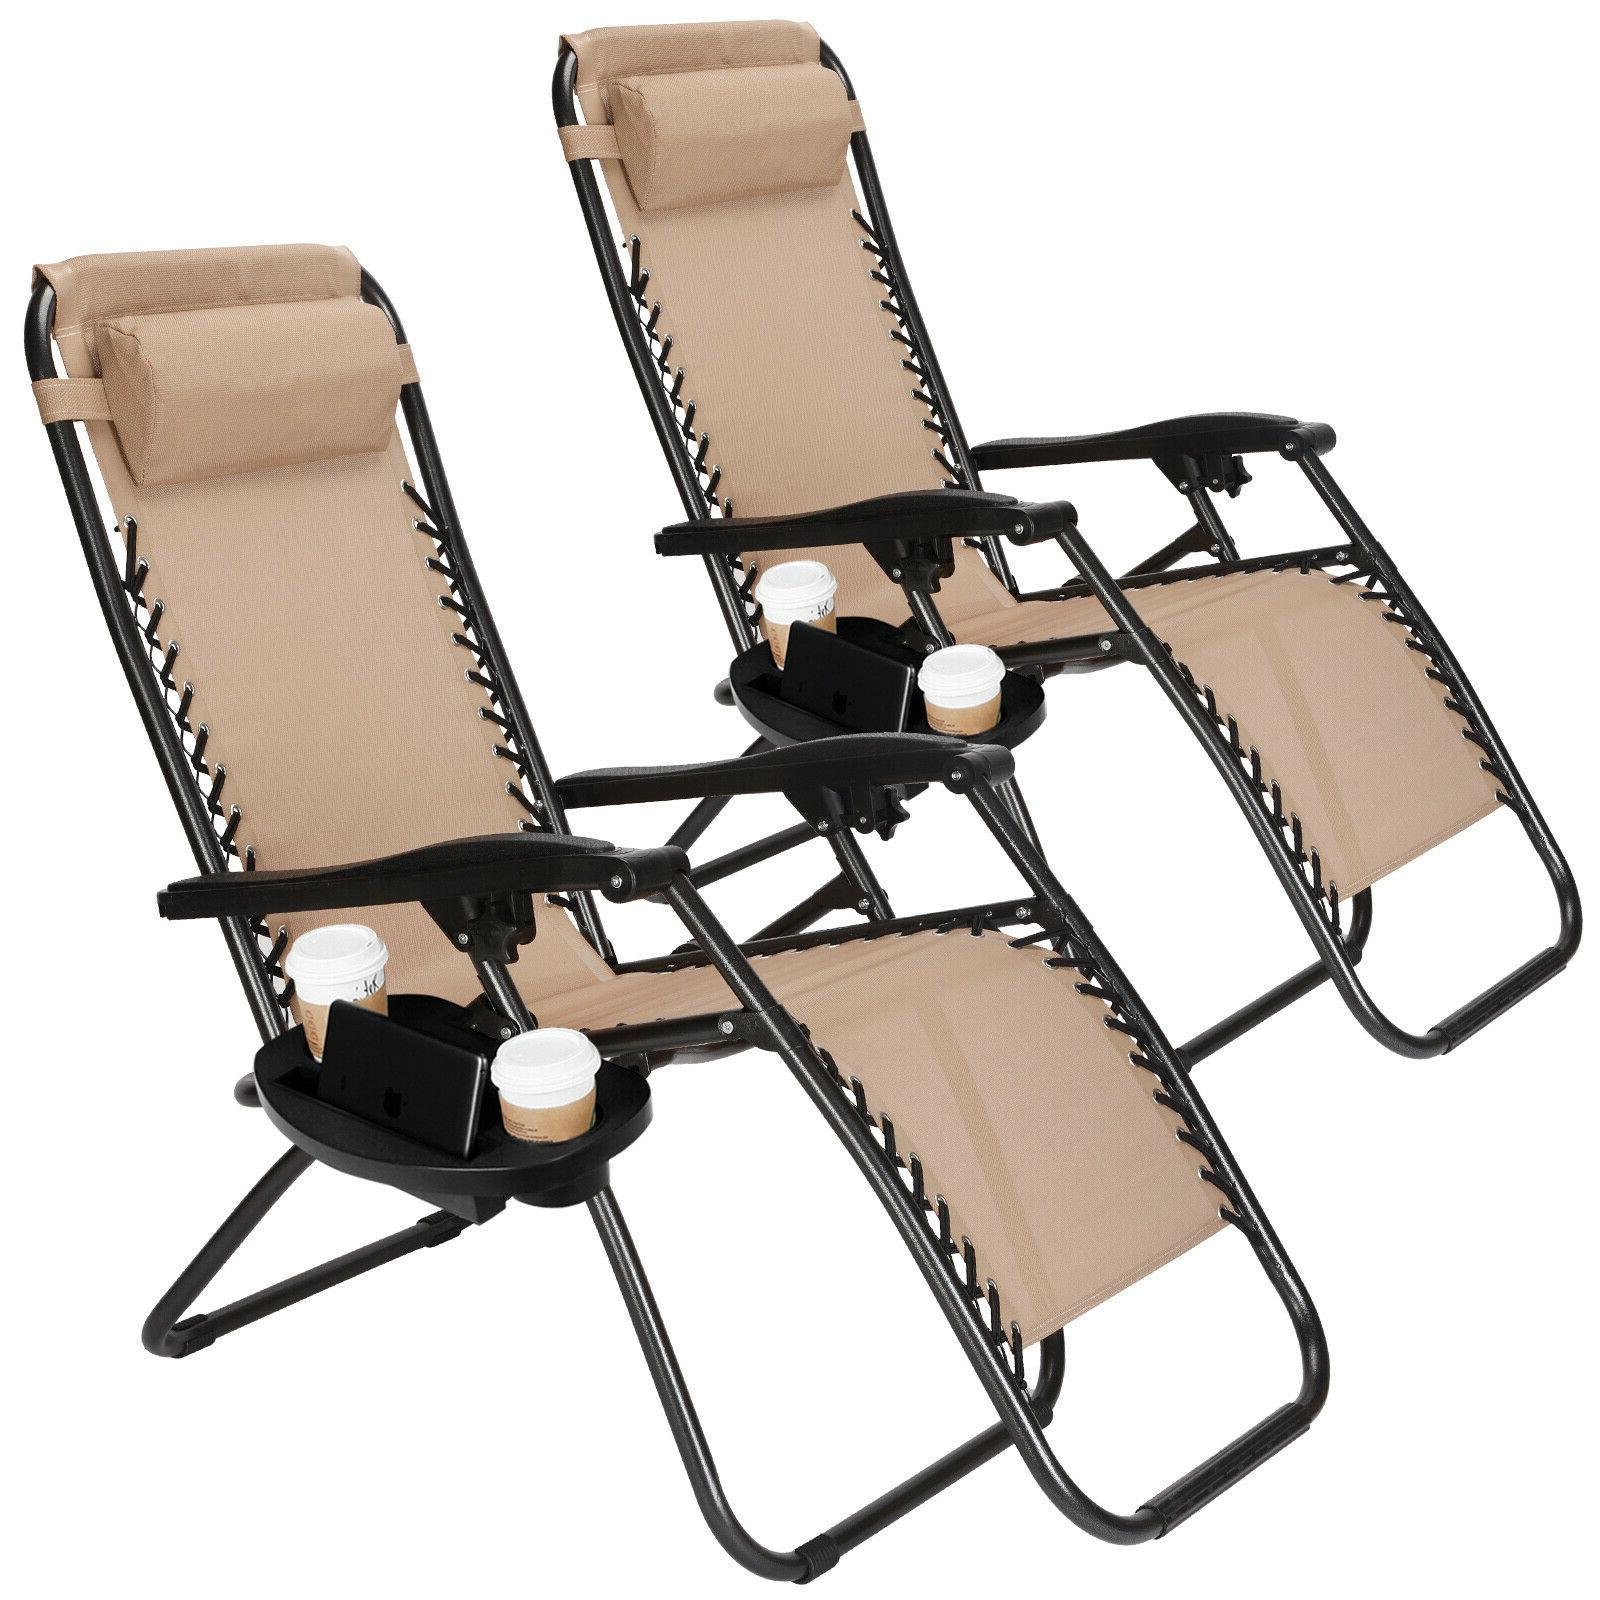 Set Of 2 Gravity Patio Chair